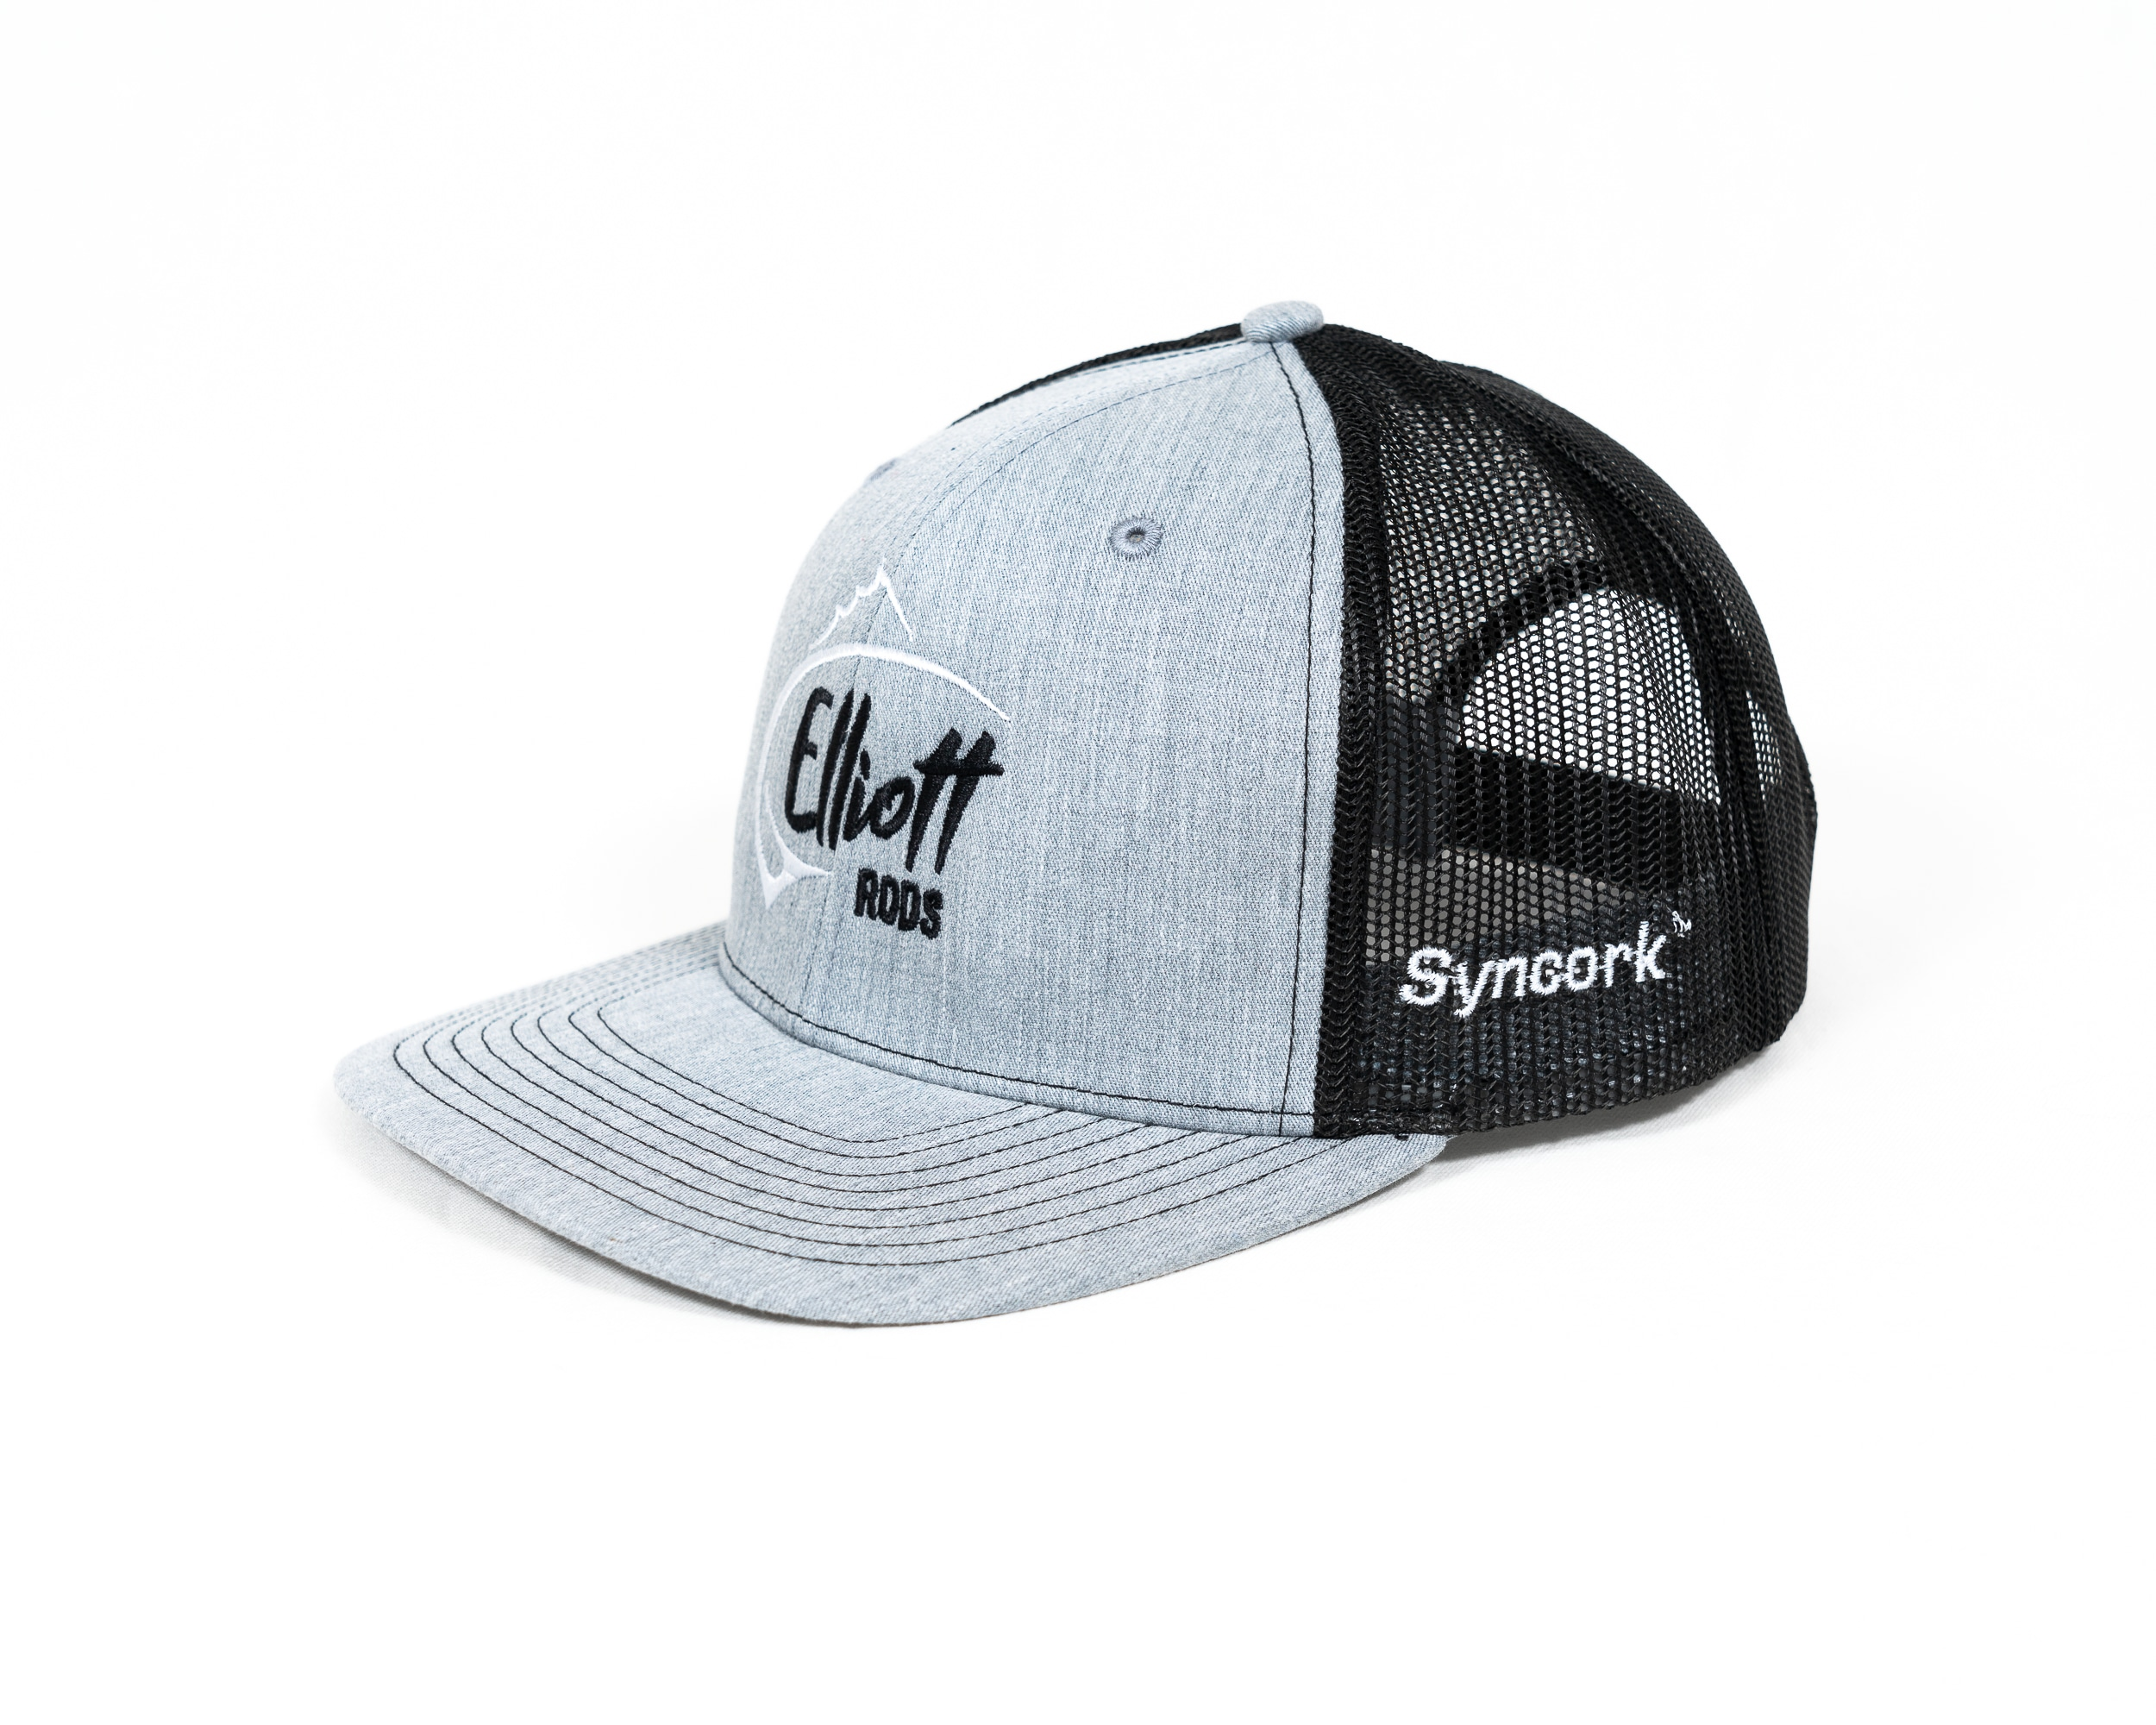 Elliott Logo Trucker Hat